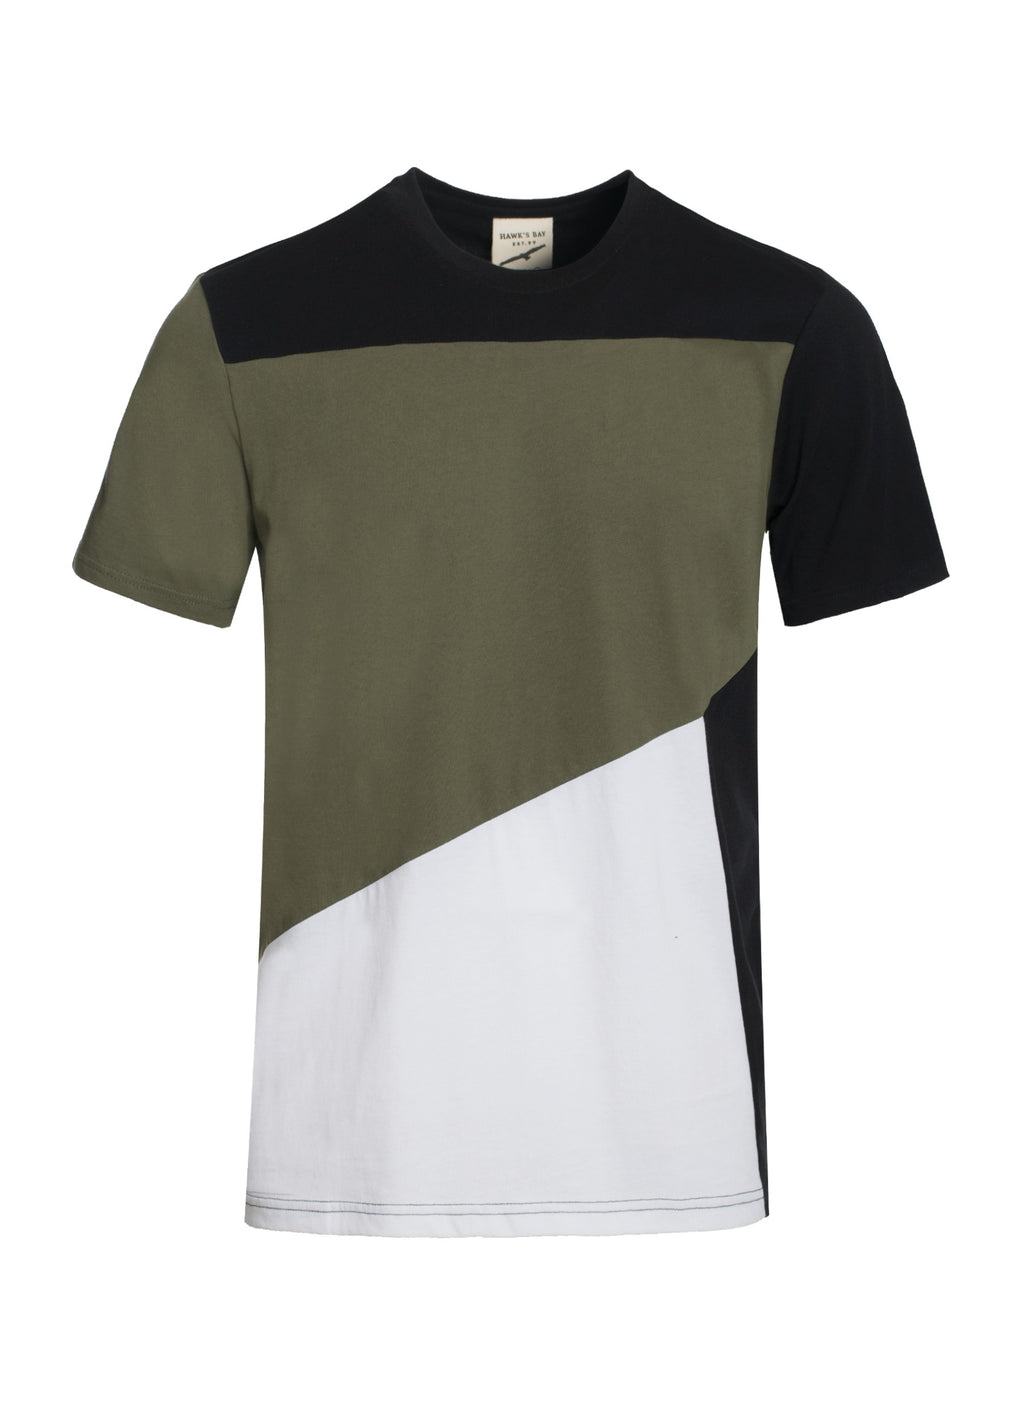 Olive Green Crew Neck Shirt - LURE Boutique